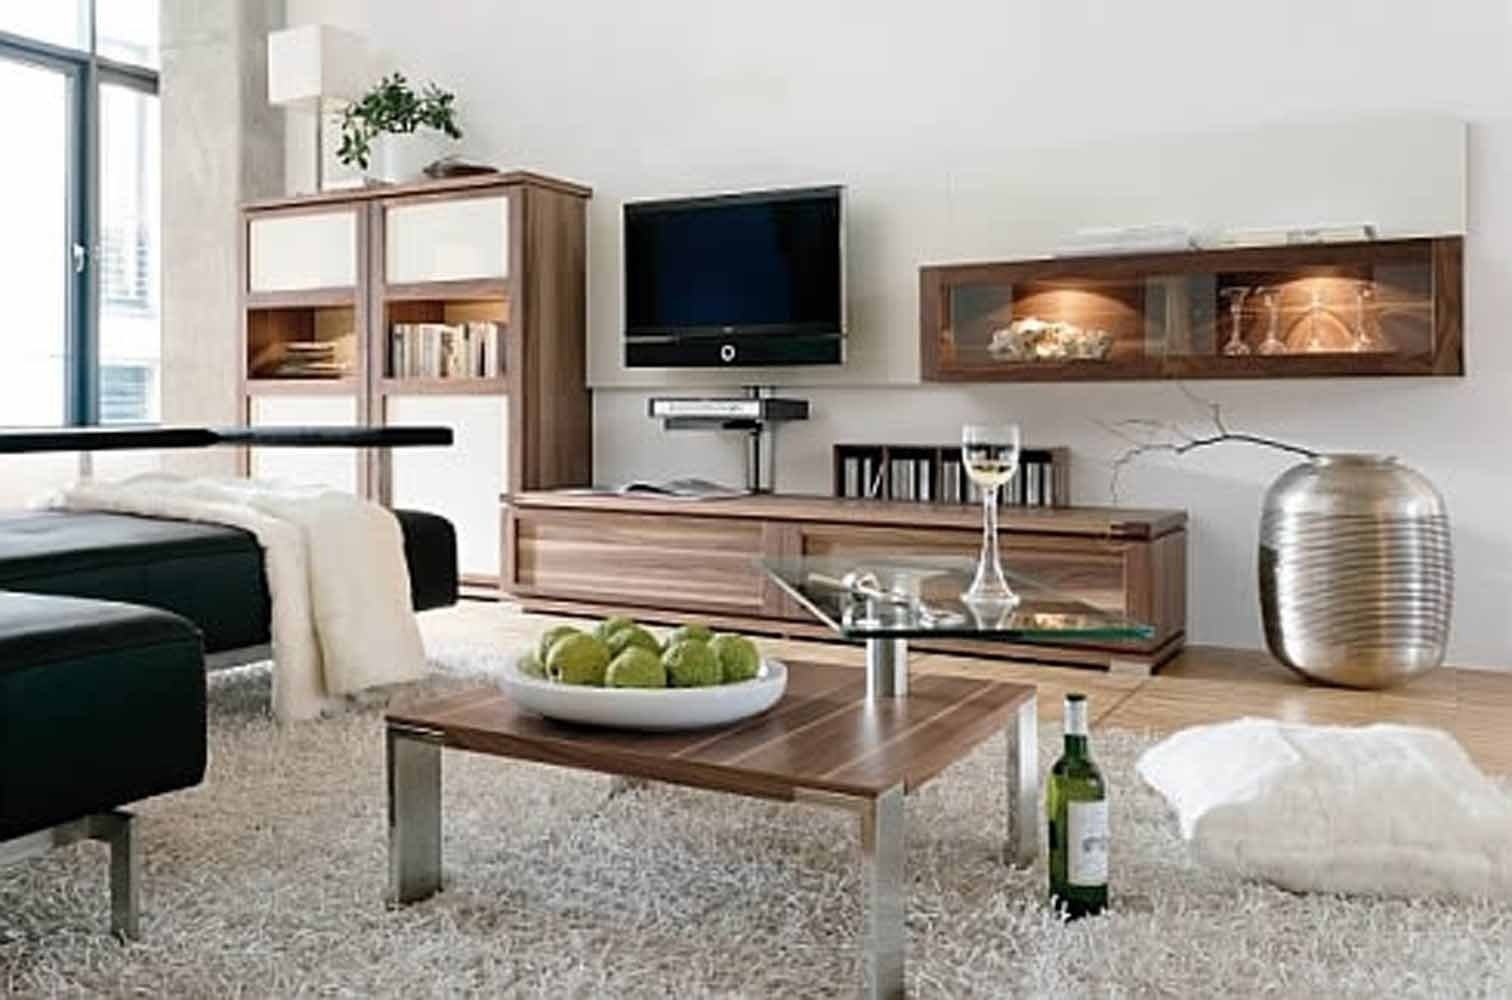 10 Perfect Furniture Ideas For Living Room design living room furniture prepossessing decor unique how to place 2020